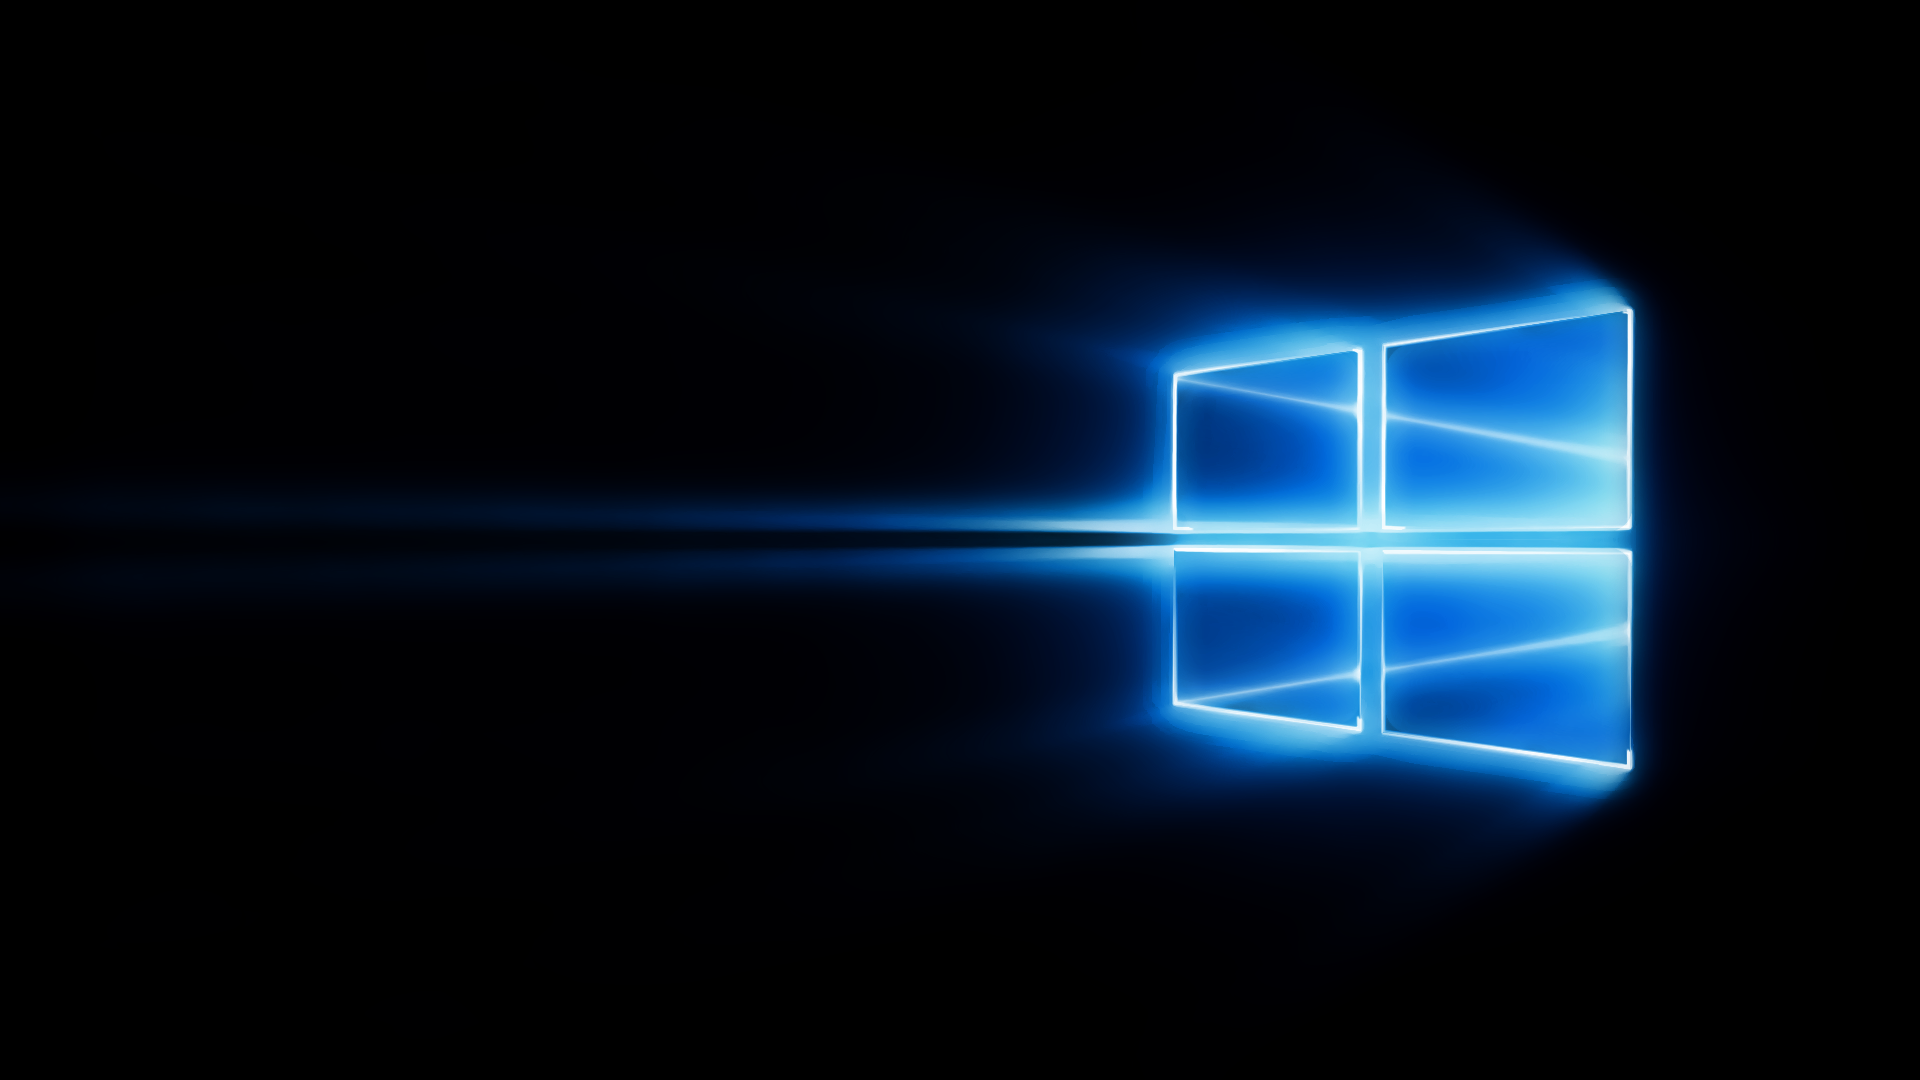 10 New Windows 8 Wallpaper Hd 3d For Desktop Full Hd 1920: Still Learning Windows 10?